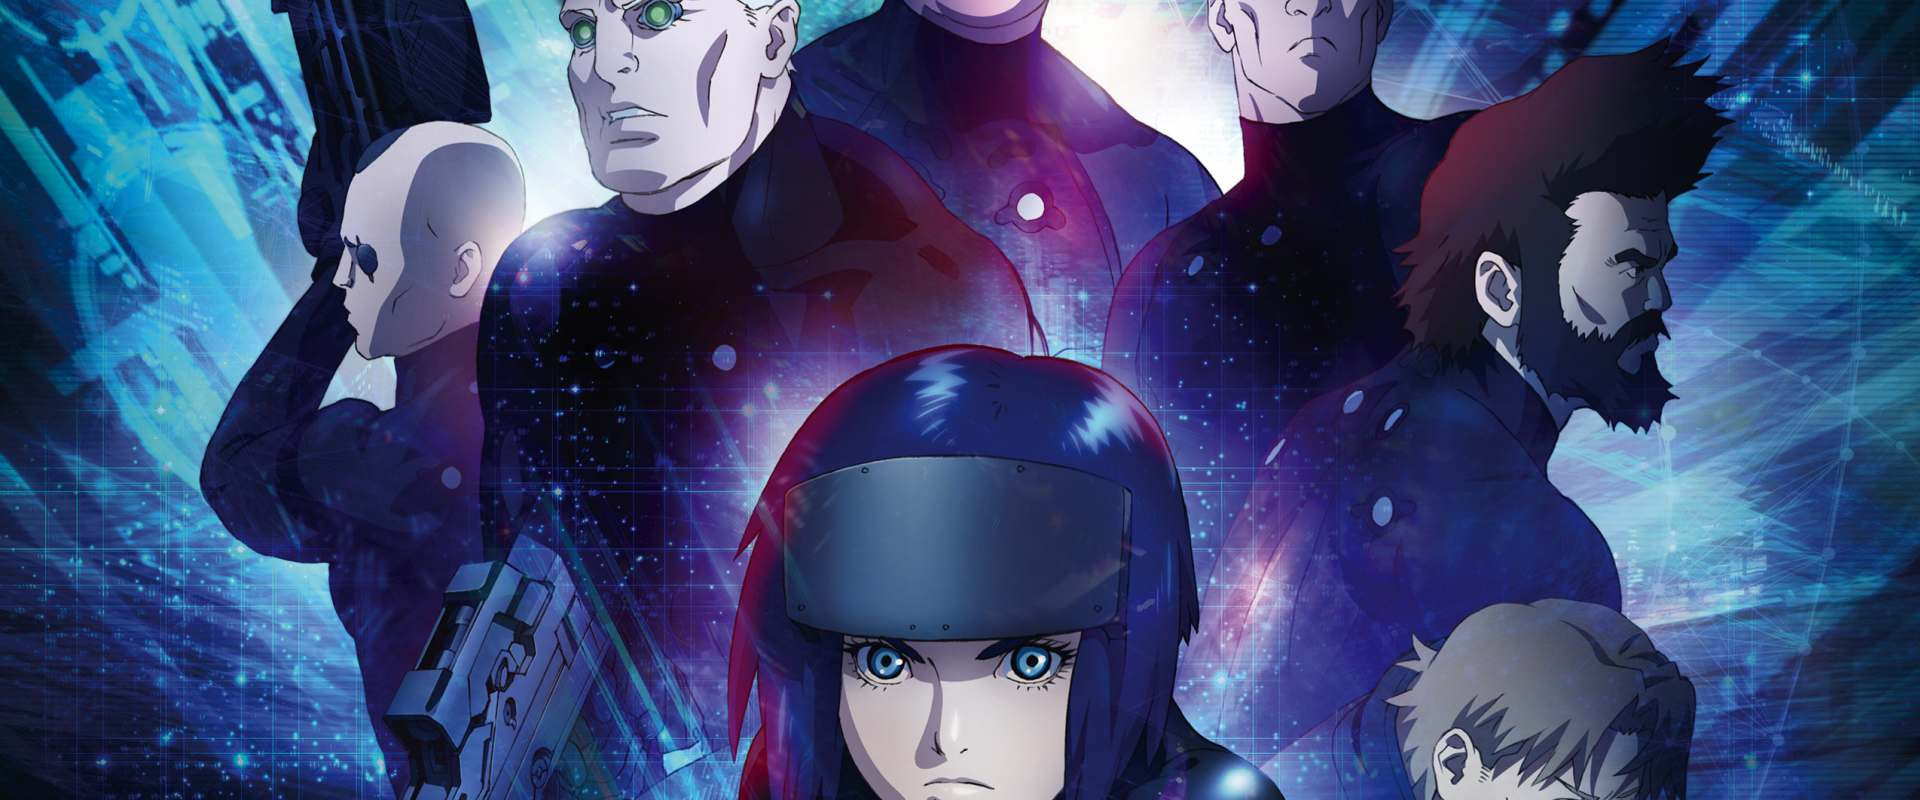 Ghost In The Shell: The New Movie background 2